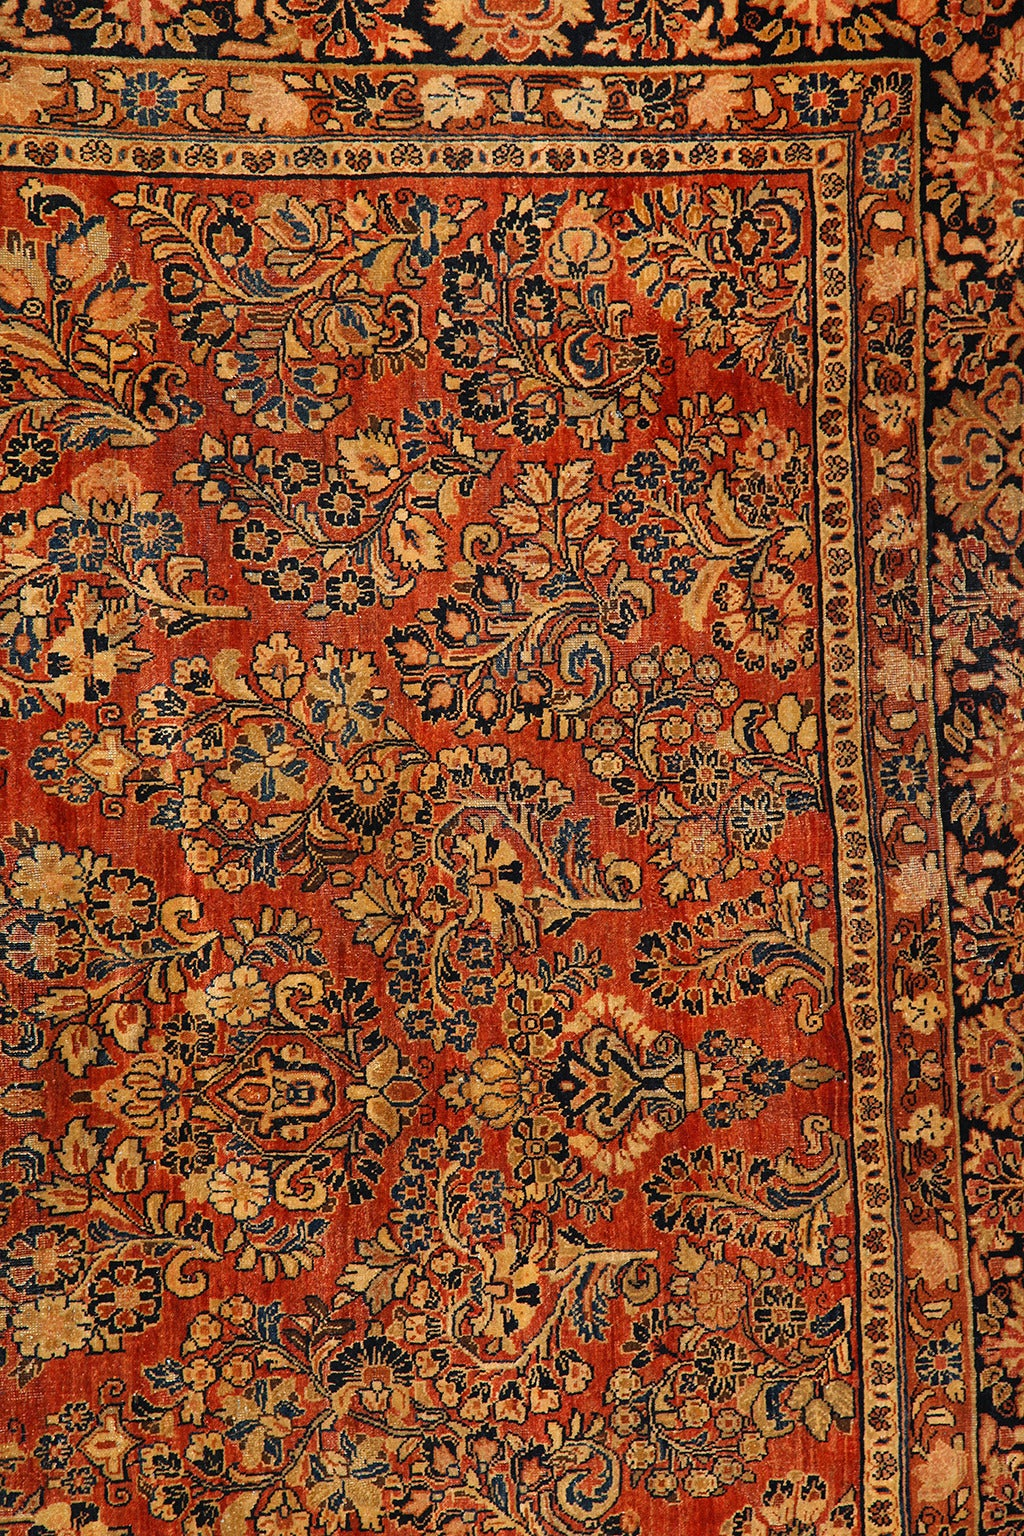 Persian Sarouk Carpet with Pure Wool Pile and Natural Vegetable Dyes, circa 1910 In Excellent Condition In New York, NY